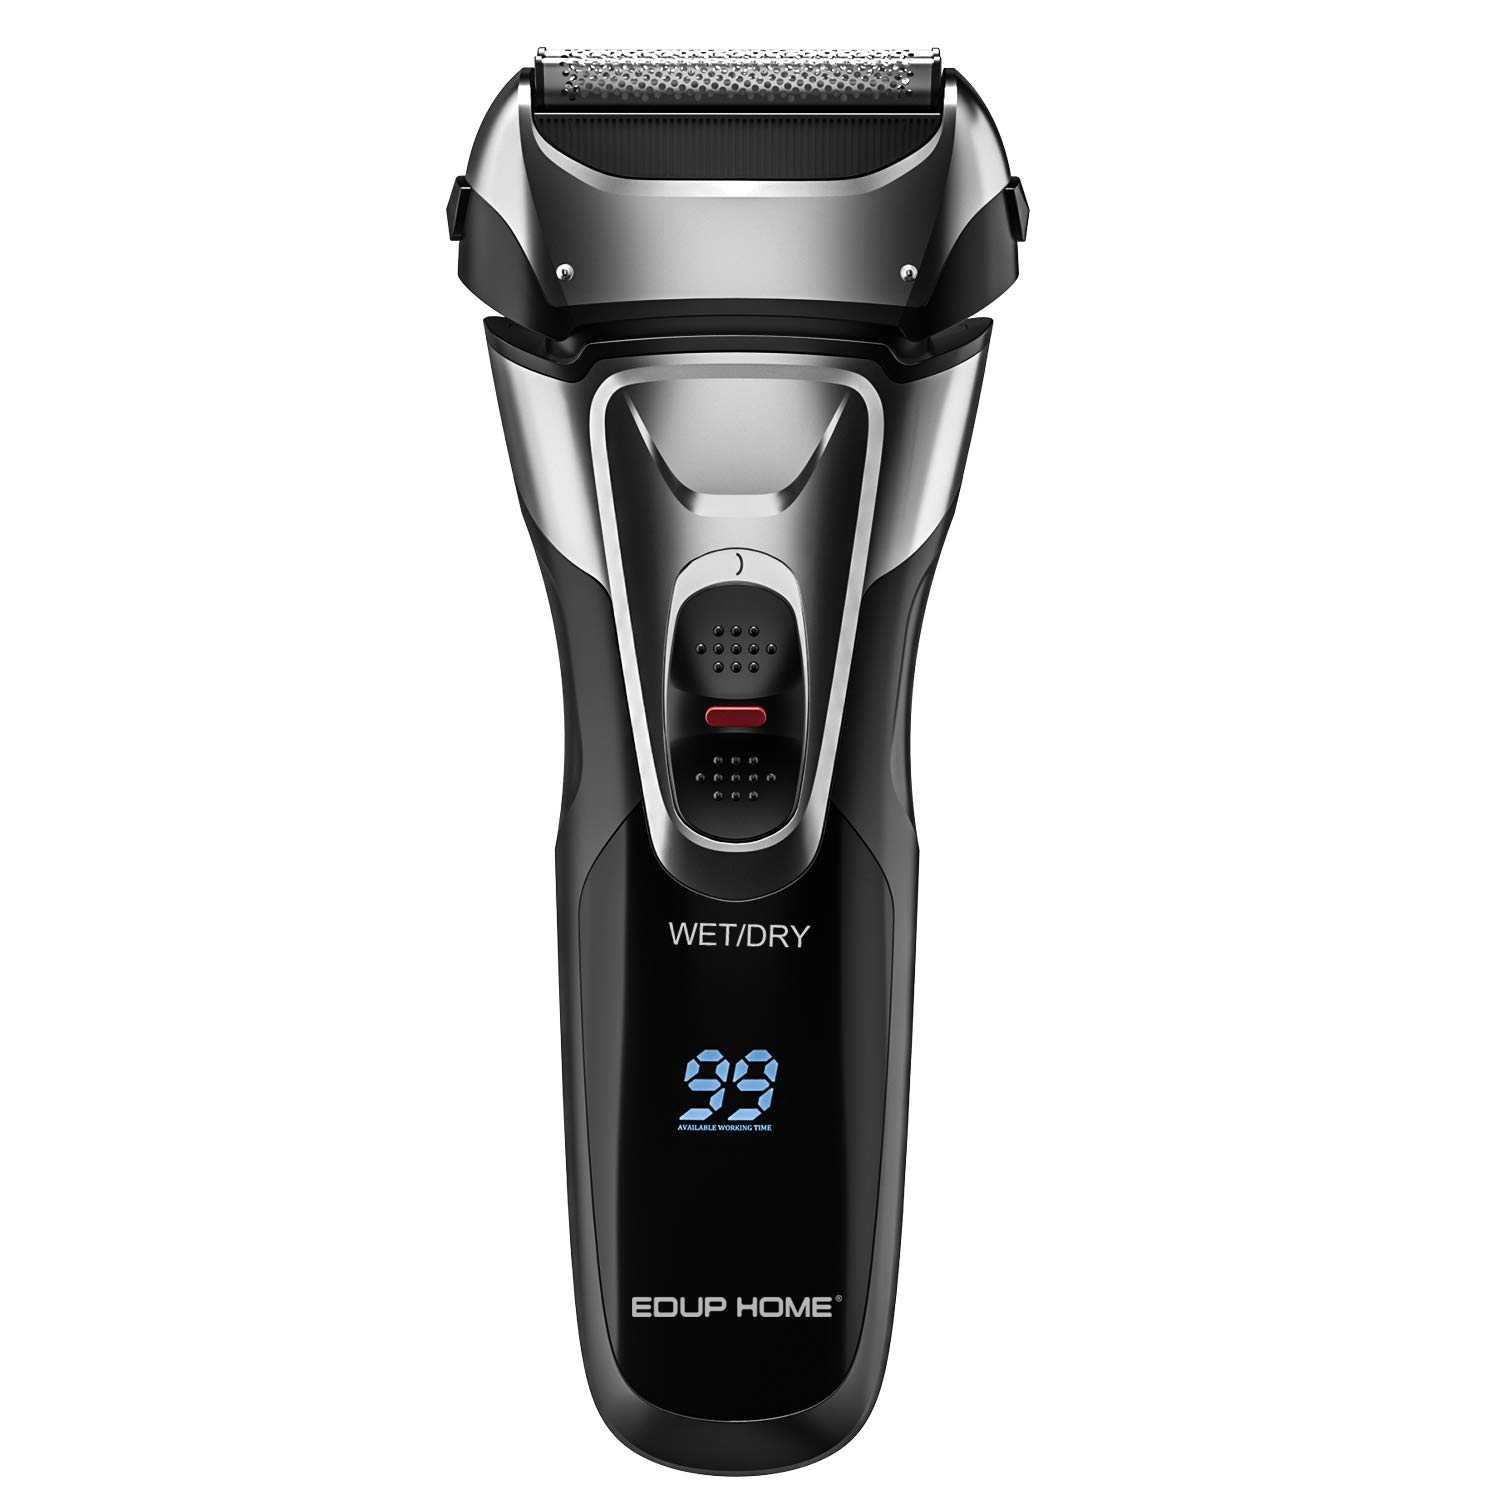 Electric Shaver with Pop-up Trimmer for Men, Men's Electric Razor Cordless Foil Shaver, IPX7 Waterproof, Charge 1.5H Work 99 Mins, Plug and Play, USB Quick Charging, LCD Display Battery Power